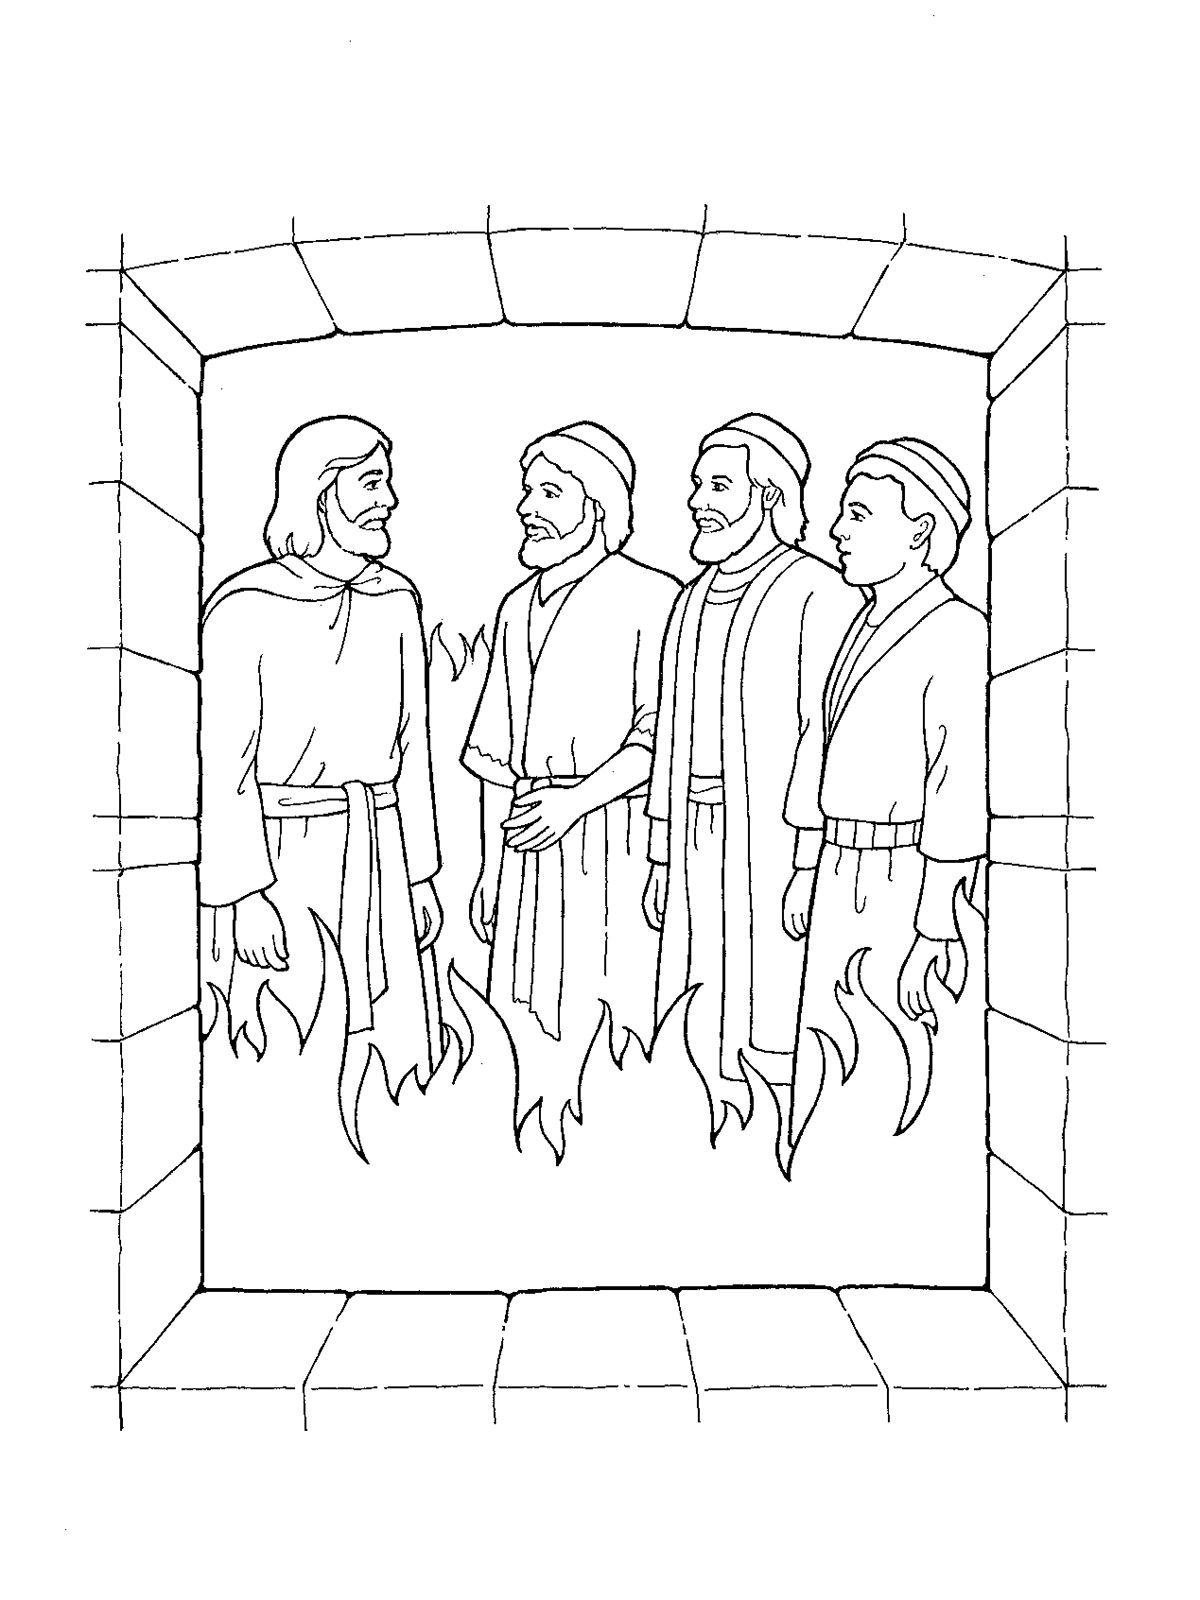 Shadrach clipart jpg freeuse download shadrach, meshach and abednego black and white clipart ... jpg freeuse download